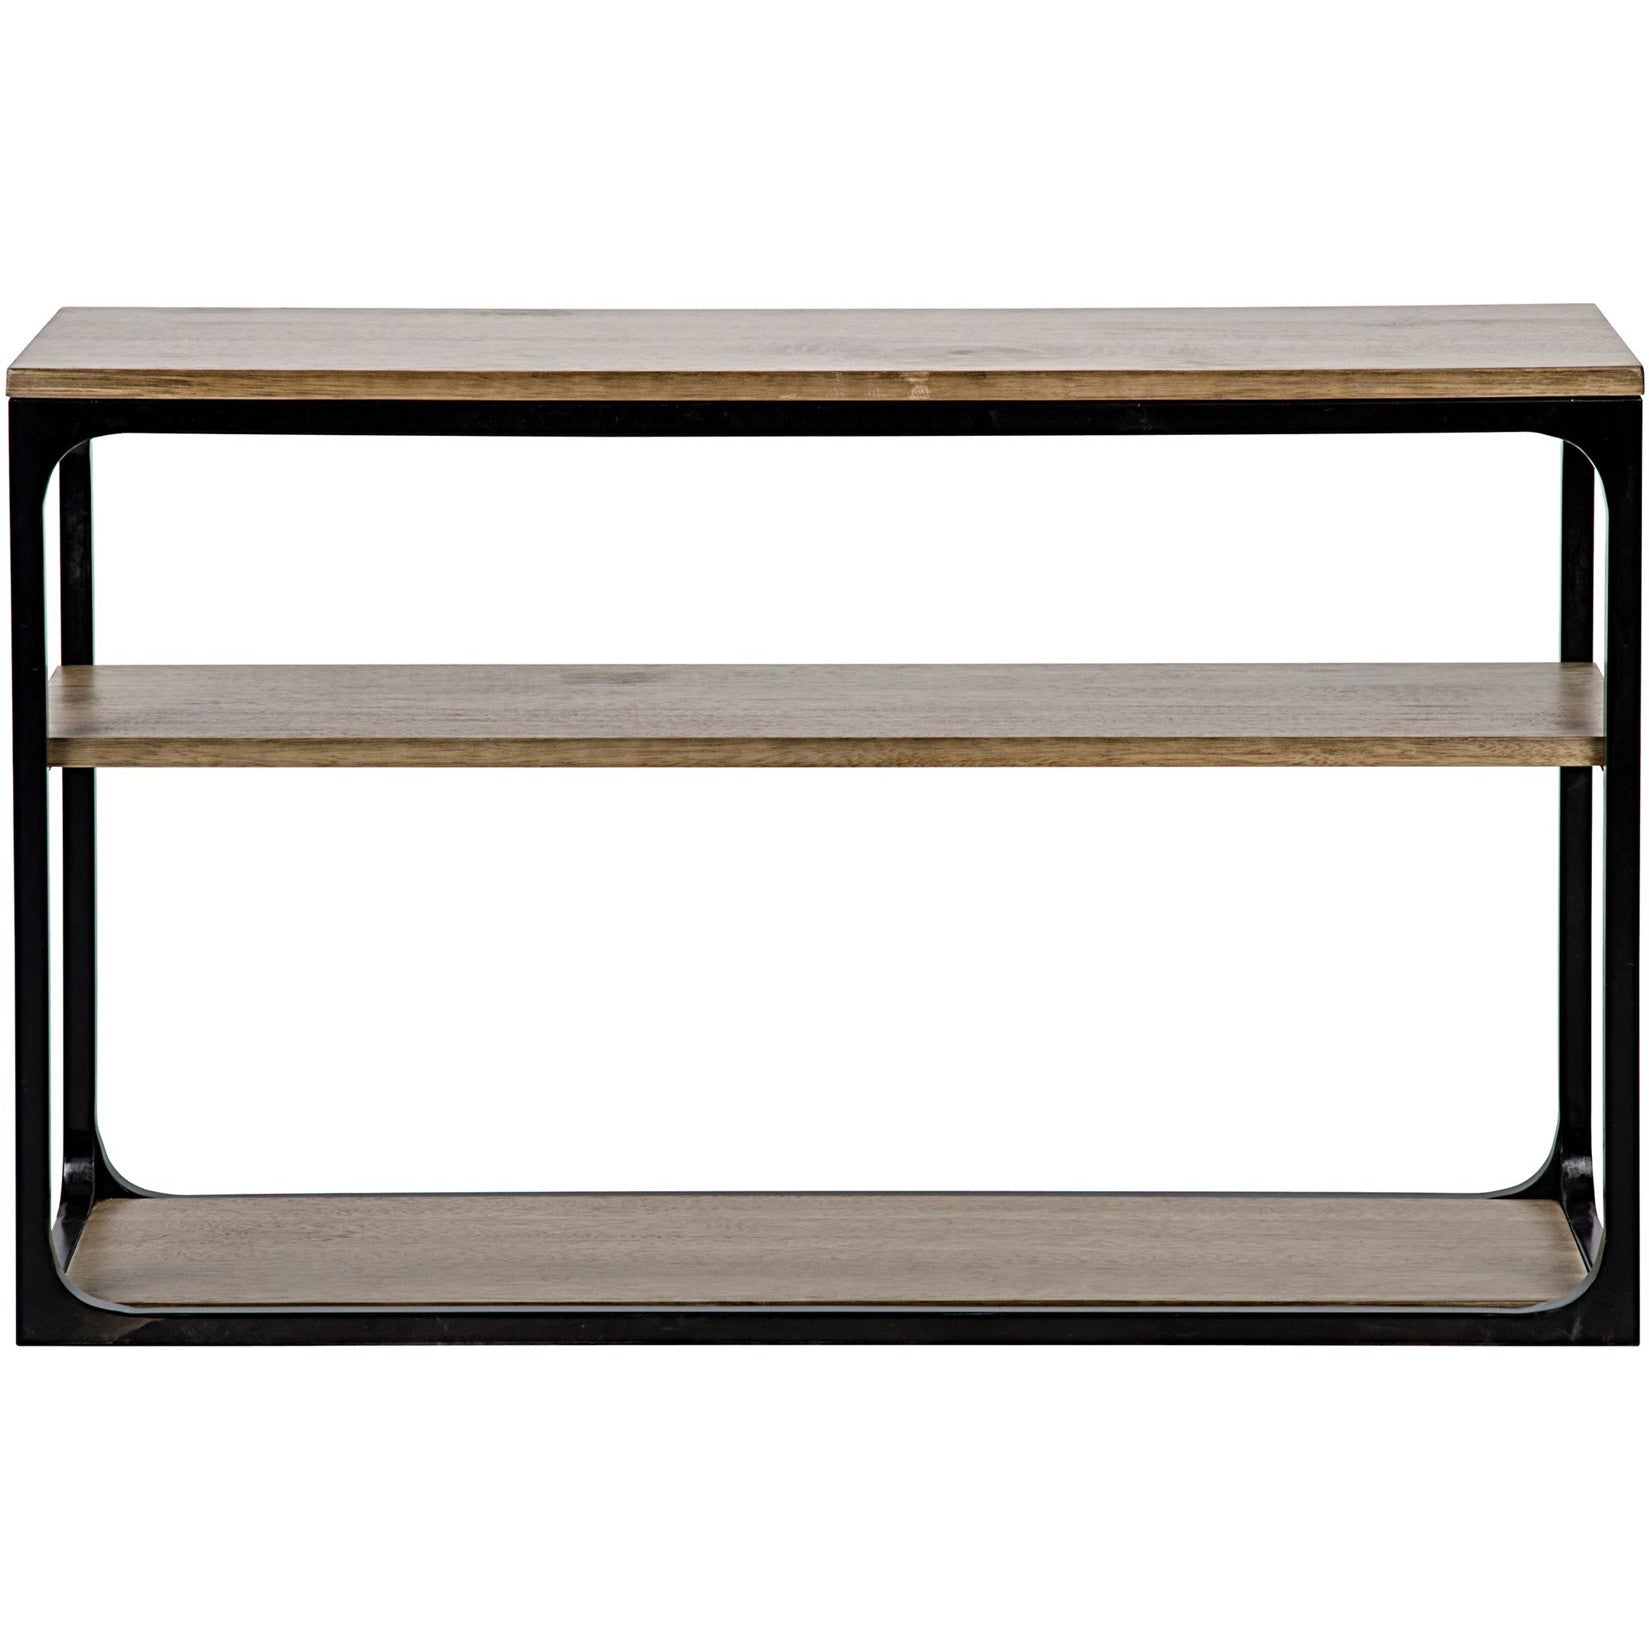 Noir - Small Novie Console W/Metal, Dark Walnut